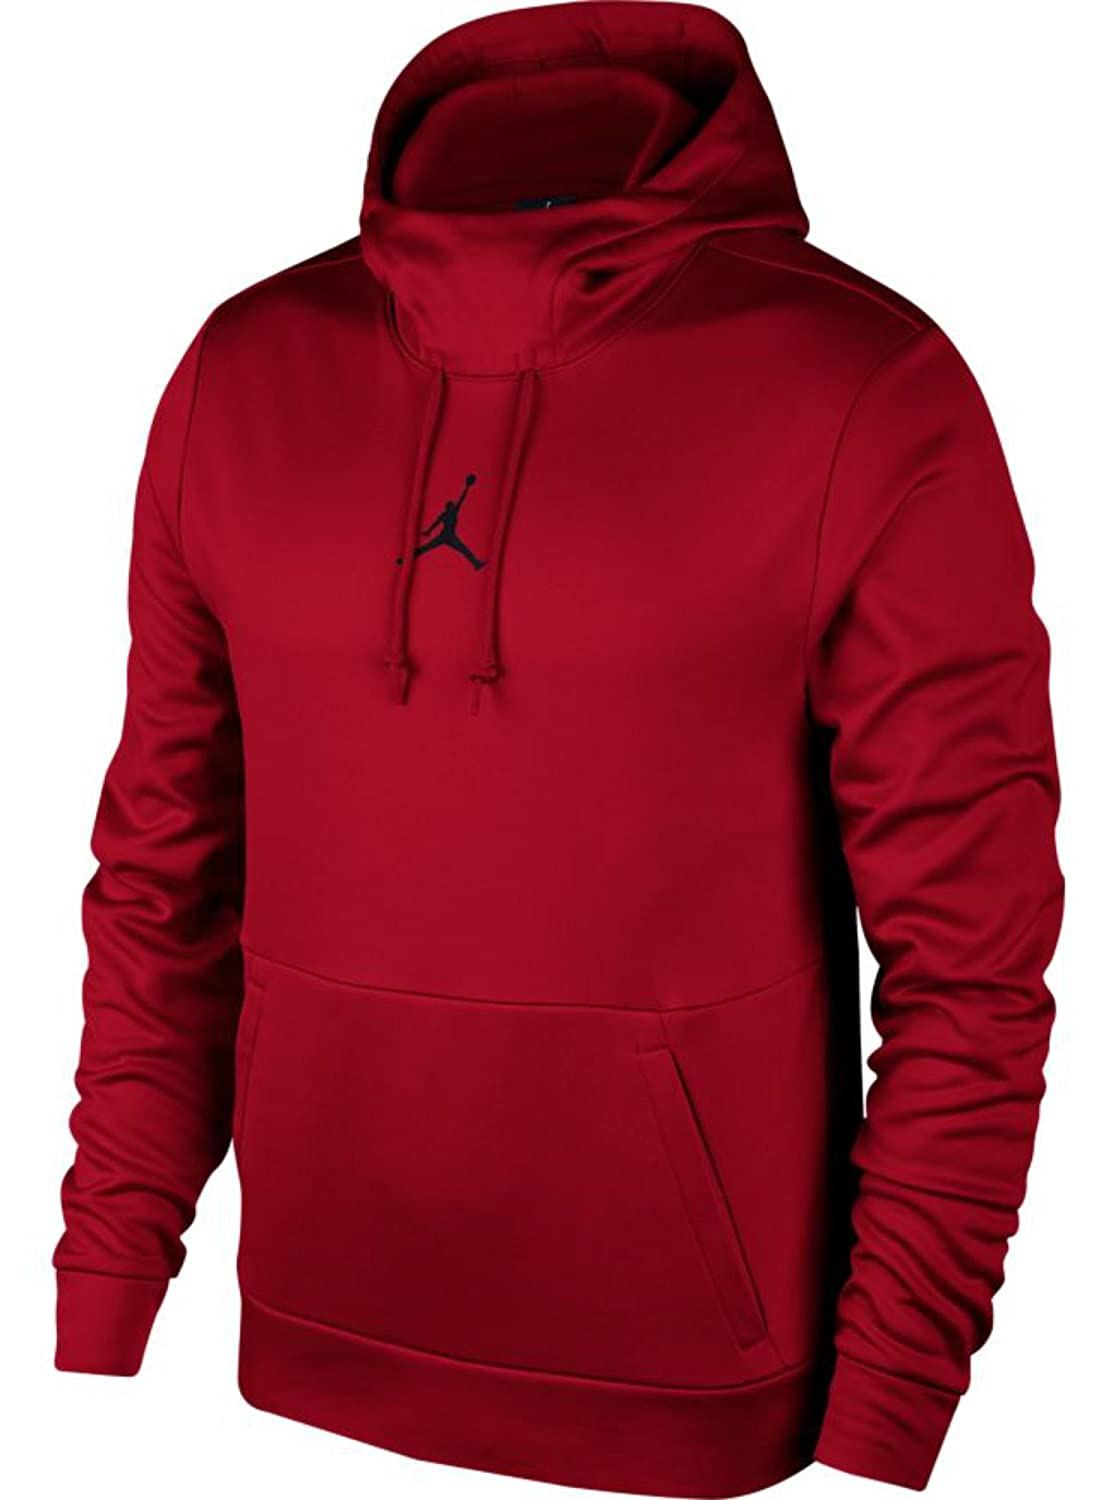 728678435103cb Nike Therma fabric helps keep you warm. Shaped sleeve cuffs provide  distraction-free coverage. Shaped hood with internal drawcords offers  personalized ...